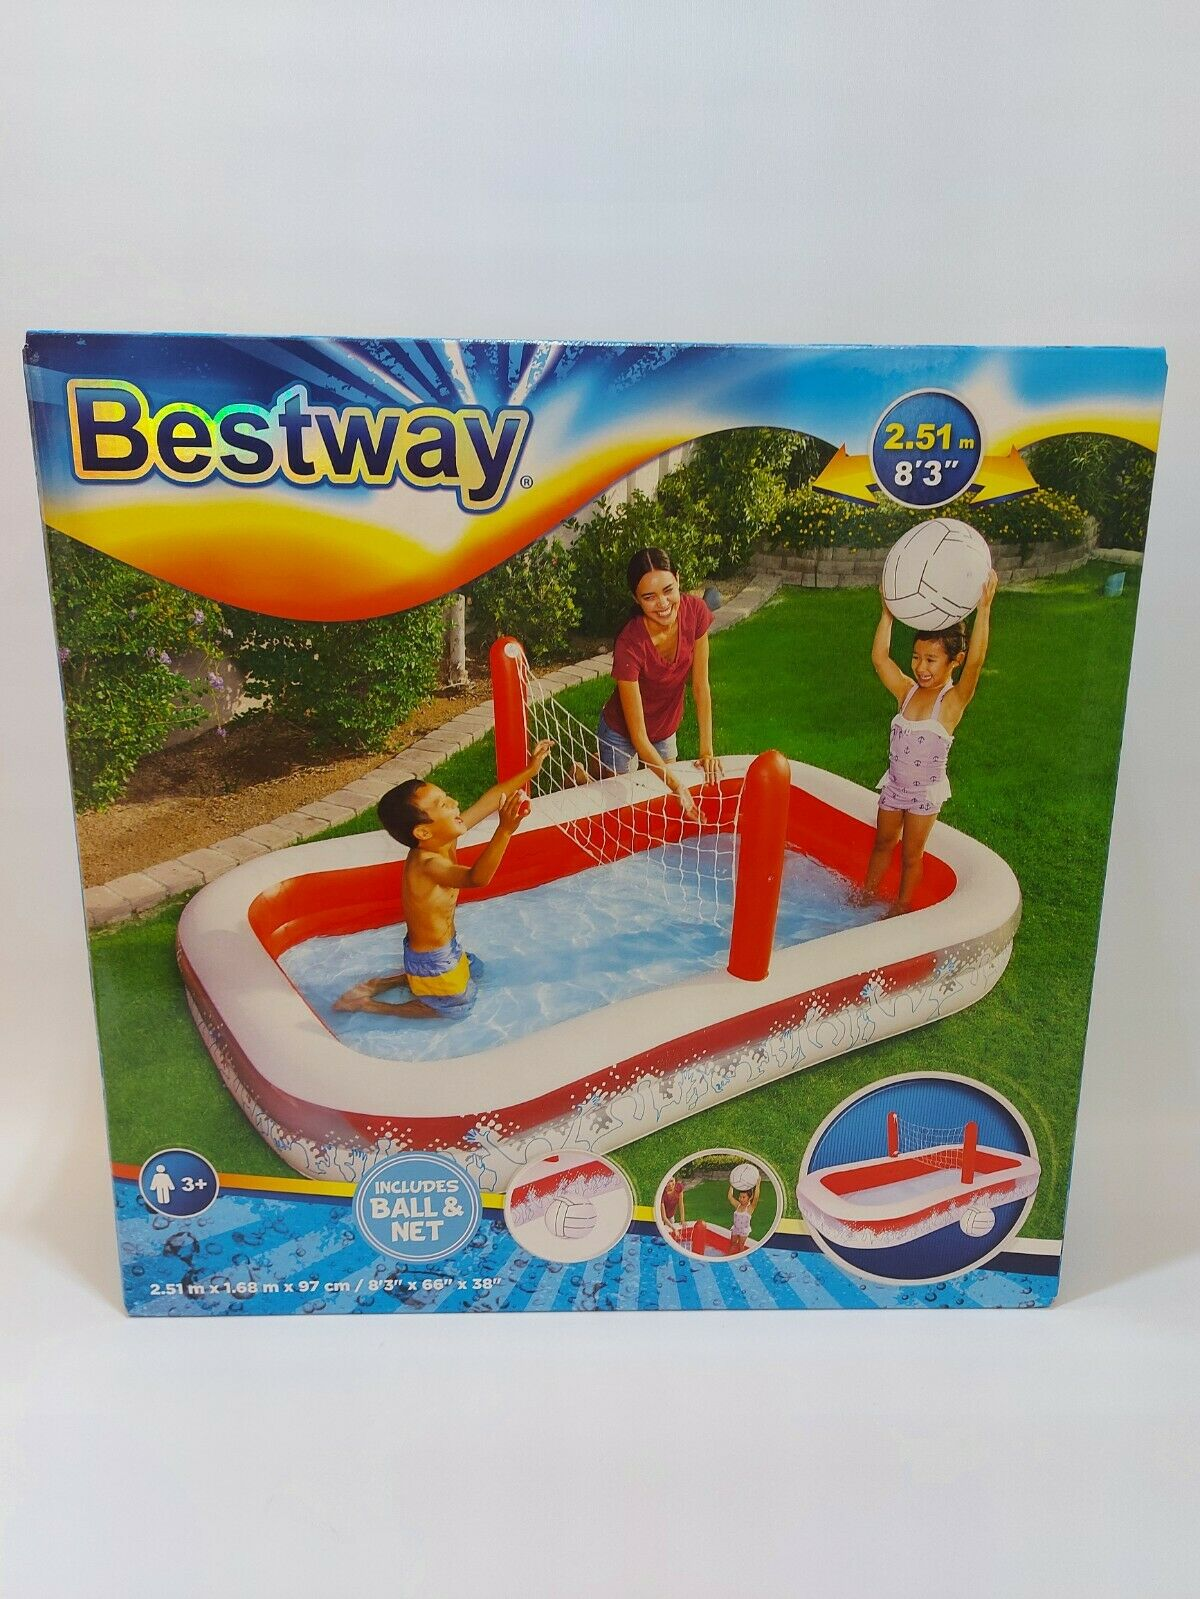 Bestway Inflate-A-Volley Pool, Includes Ball & Net. Pool Size - 100